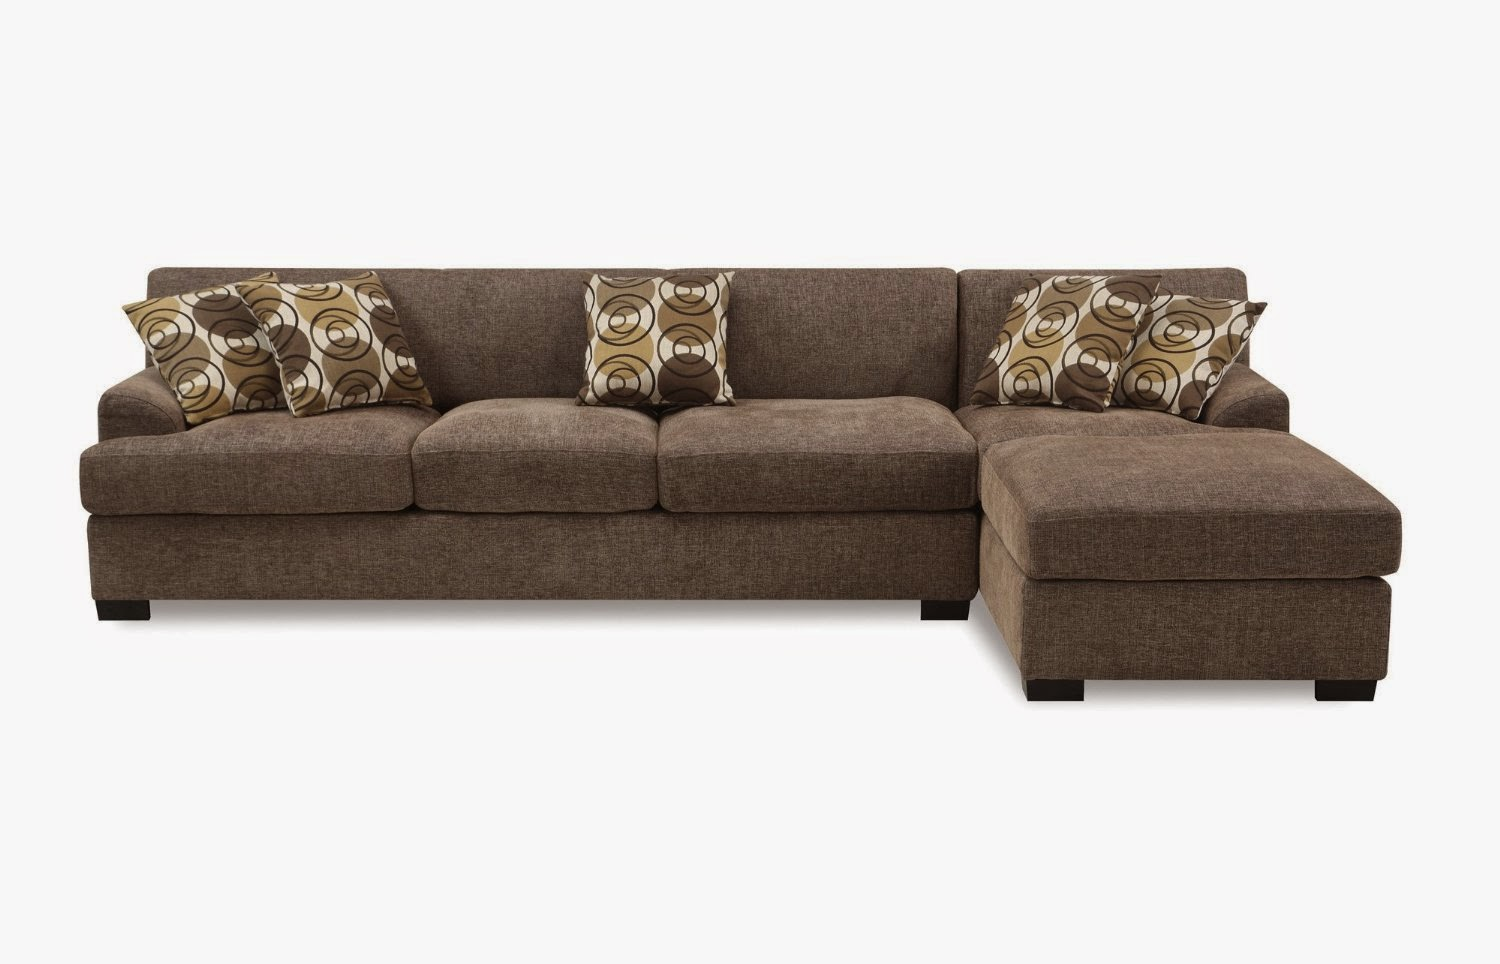 Bobkona Poundex Benford Collection Faux Linen Chaise Sofa